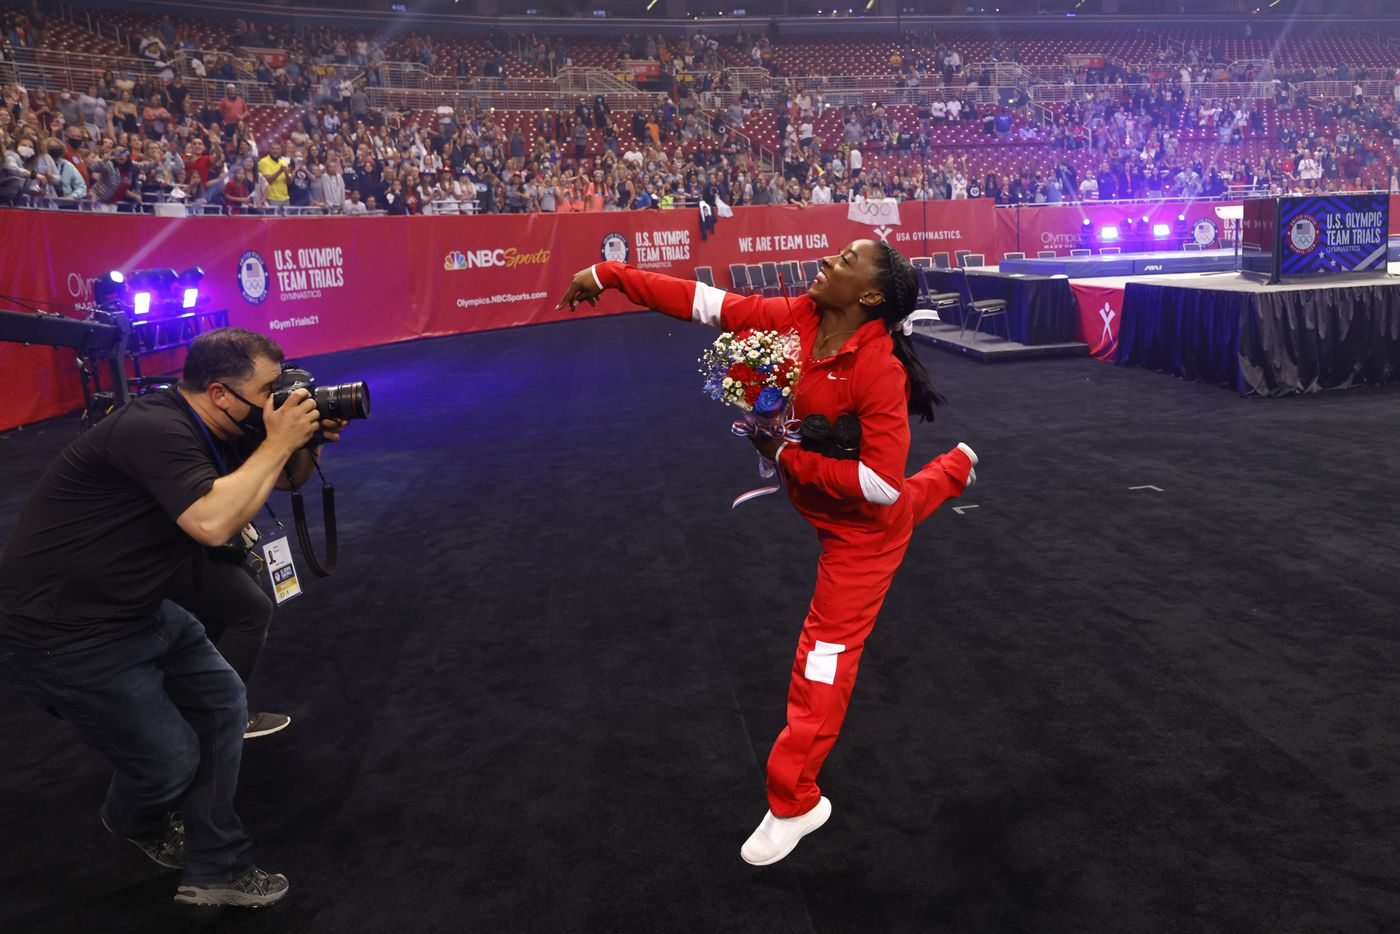 Simone Biles tosses a shirt in the stands after team introductions on day 2 of the women's 2021 U.S. Olympic Trials at The Dome at America's Center on Sunday, June 27, 2021 in St Louis, Missouri.(Vernon Bryant/The Dallas Morning News)